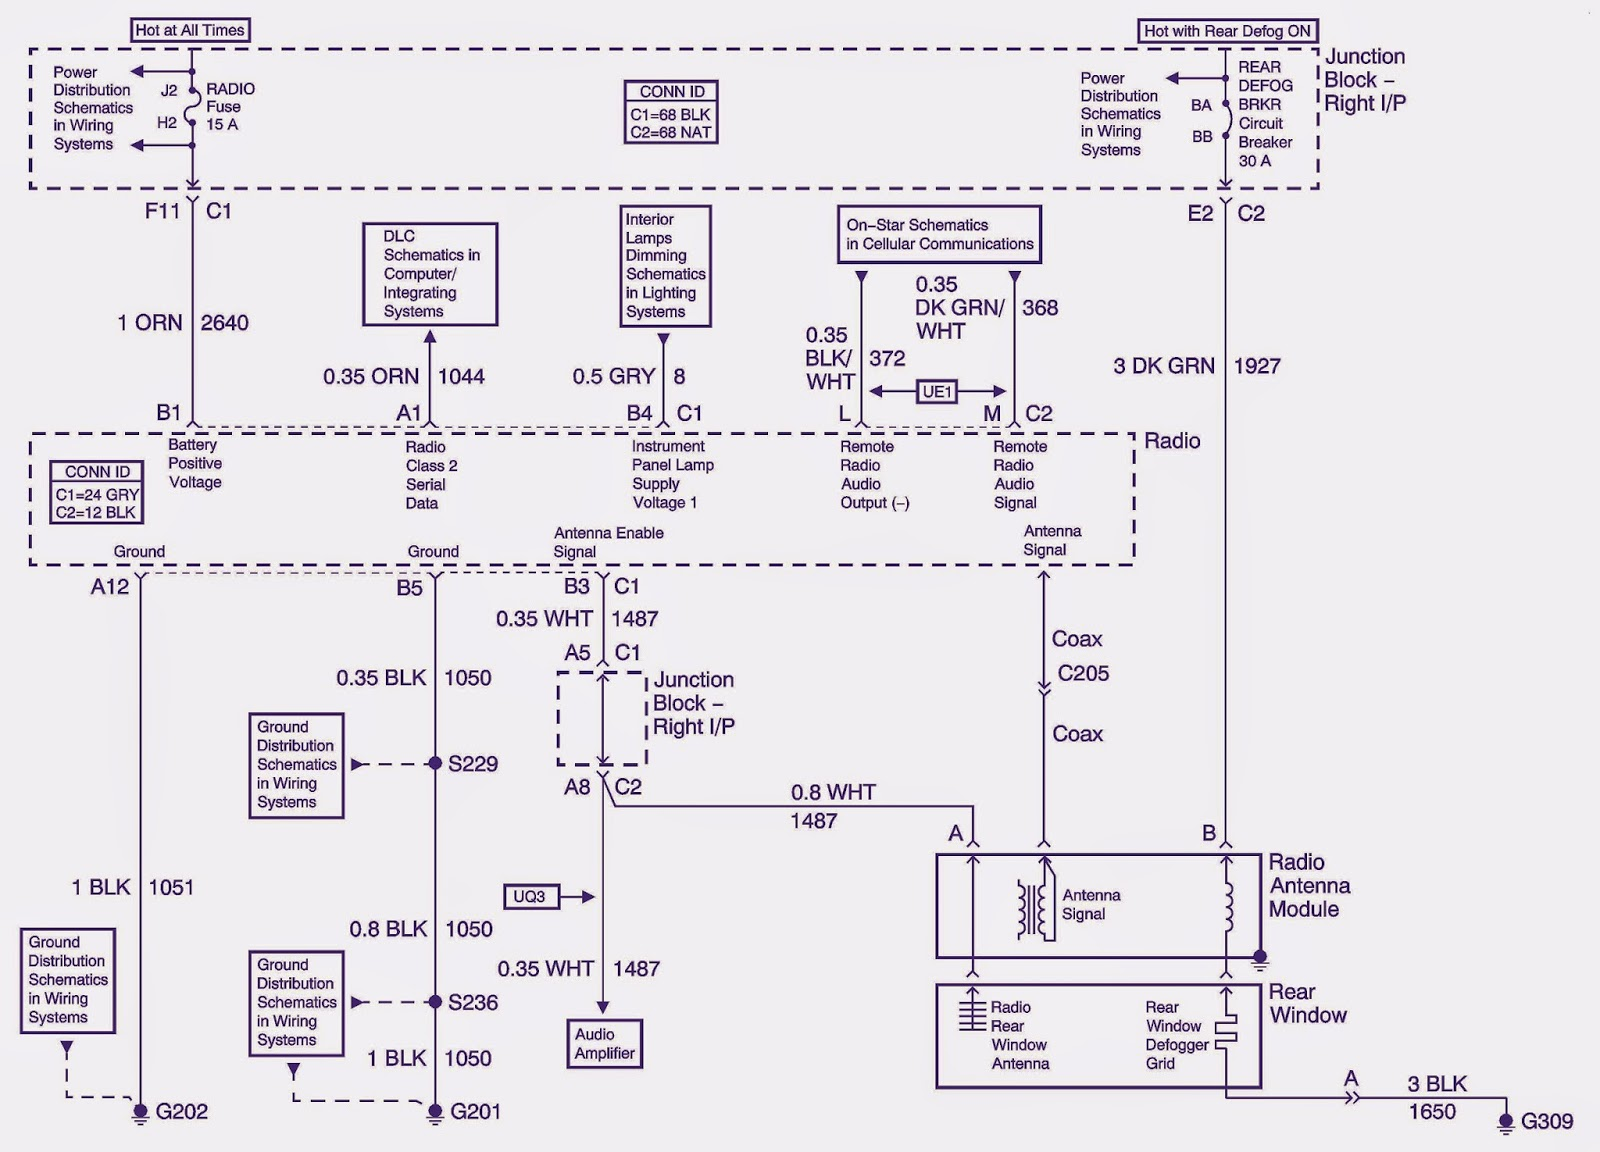 wiring diagram for 1984 monte carlo wiring diagram view 1981 monte carlo engine diagram [ 1600 x 1152 Pixel ]